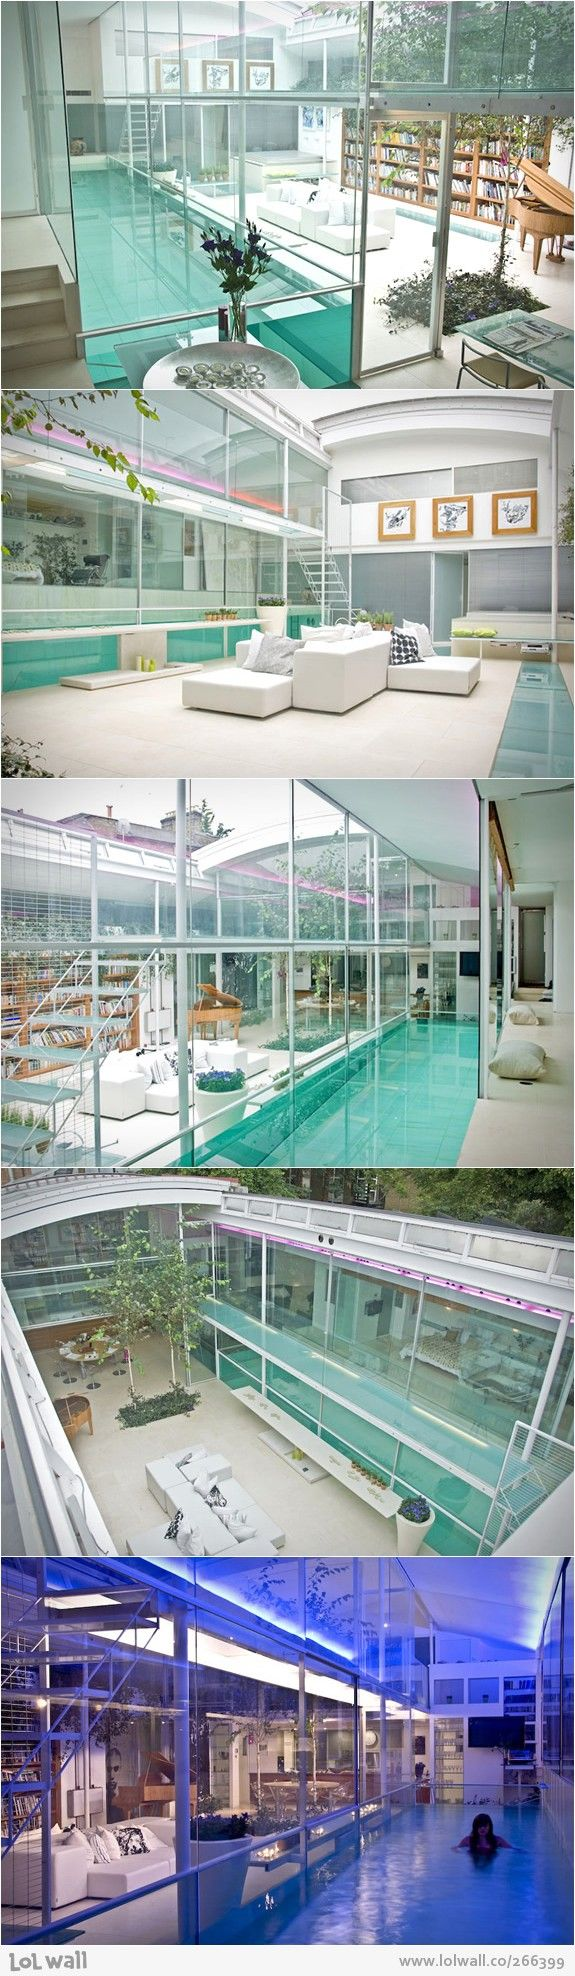 Amazing house & indoor pool